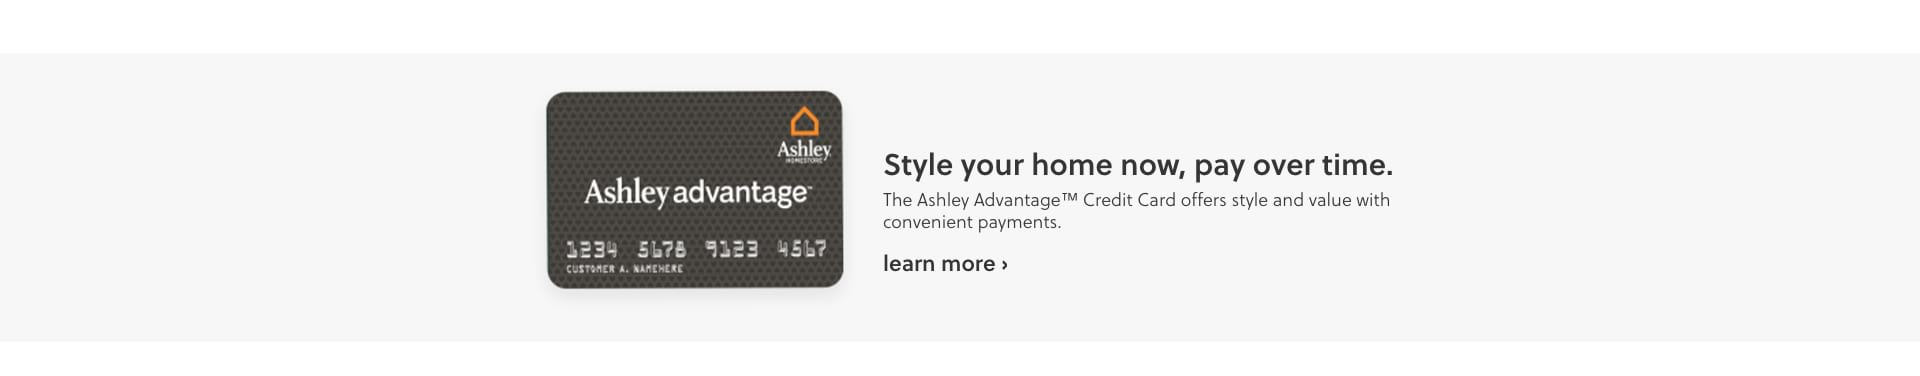 The Ashley Advantage Credit Card Offers Style And Value With Convenient Payments